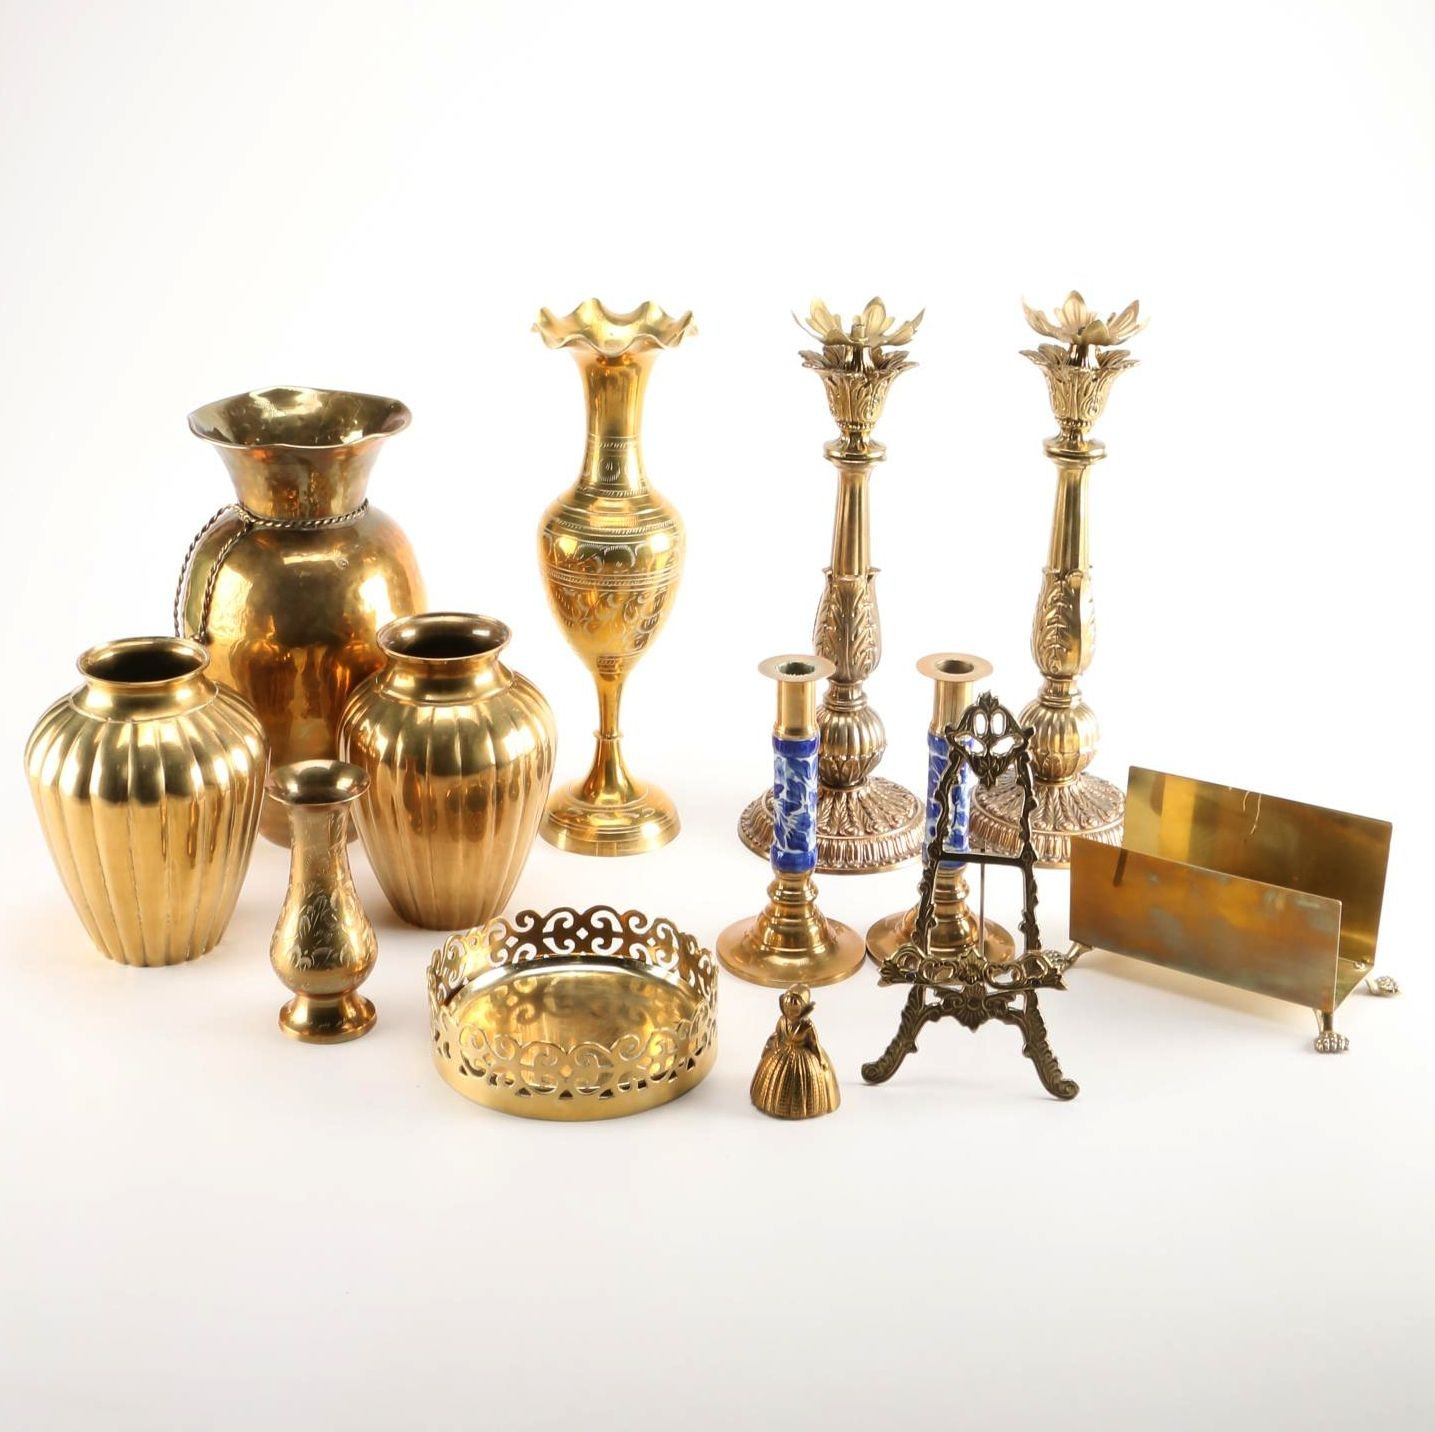 Collection of Brass Housewares